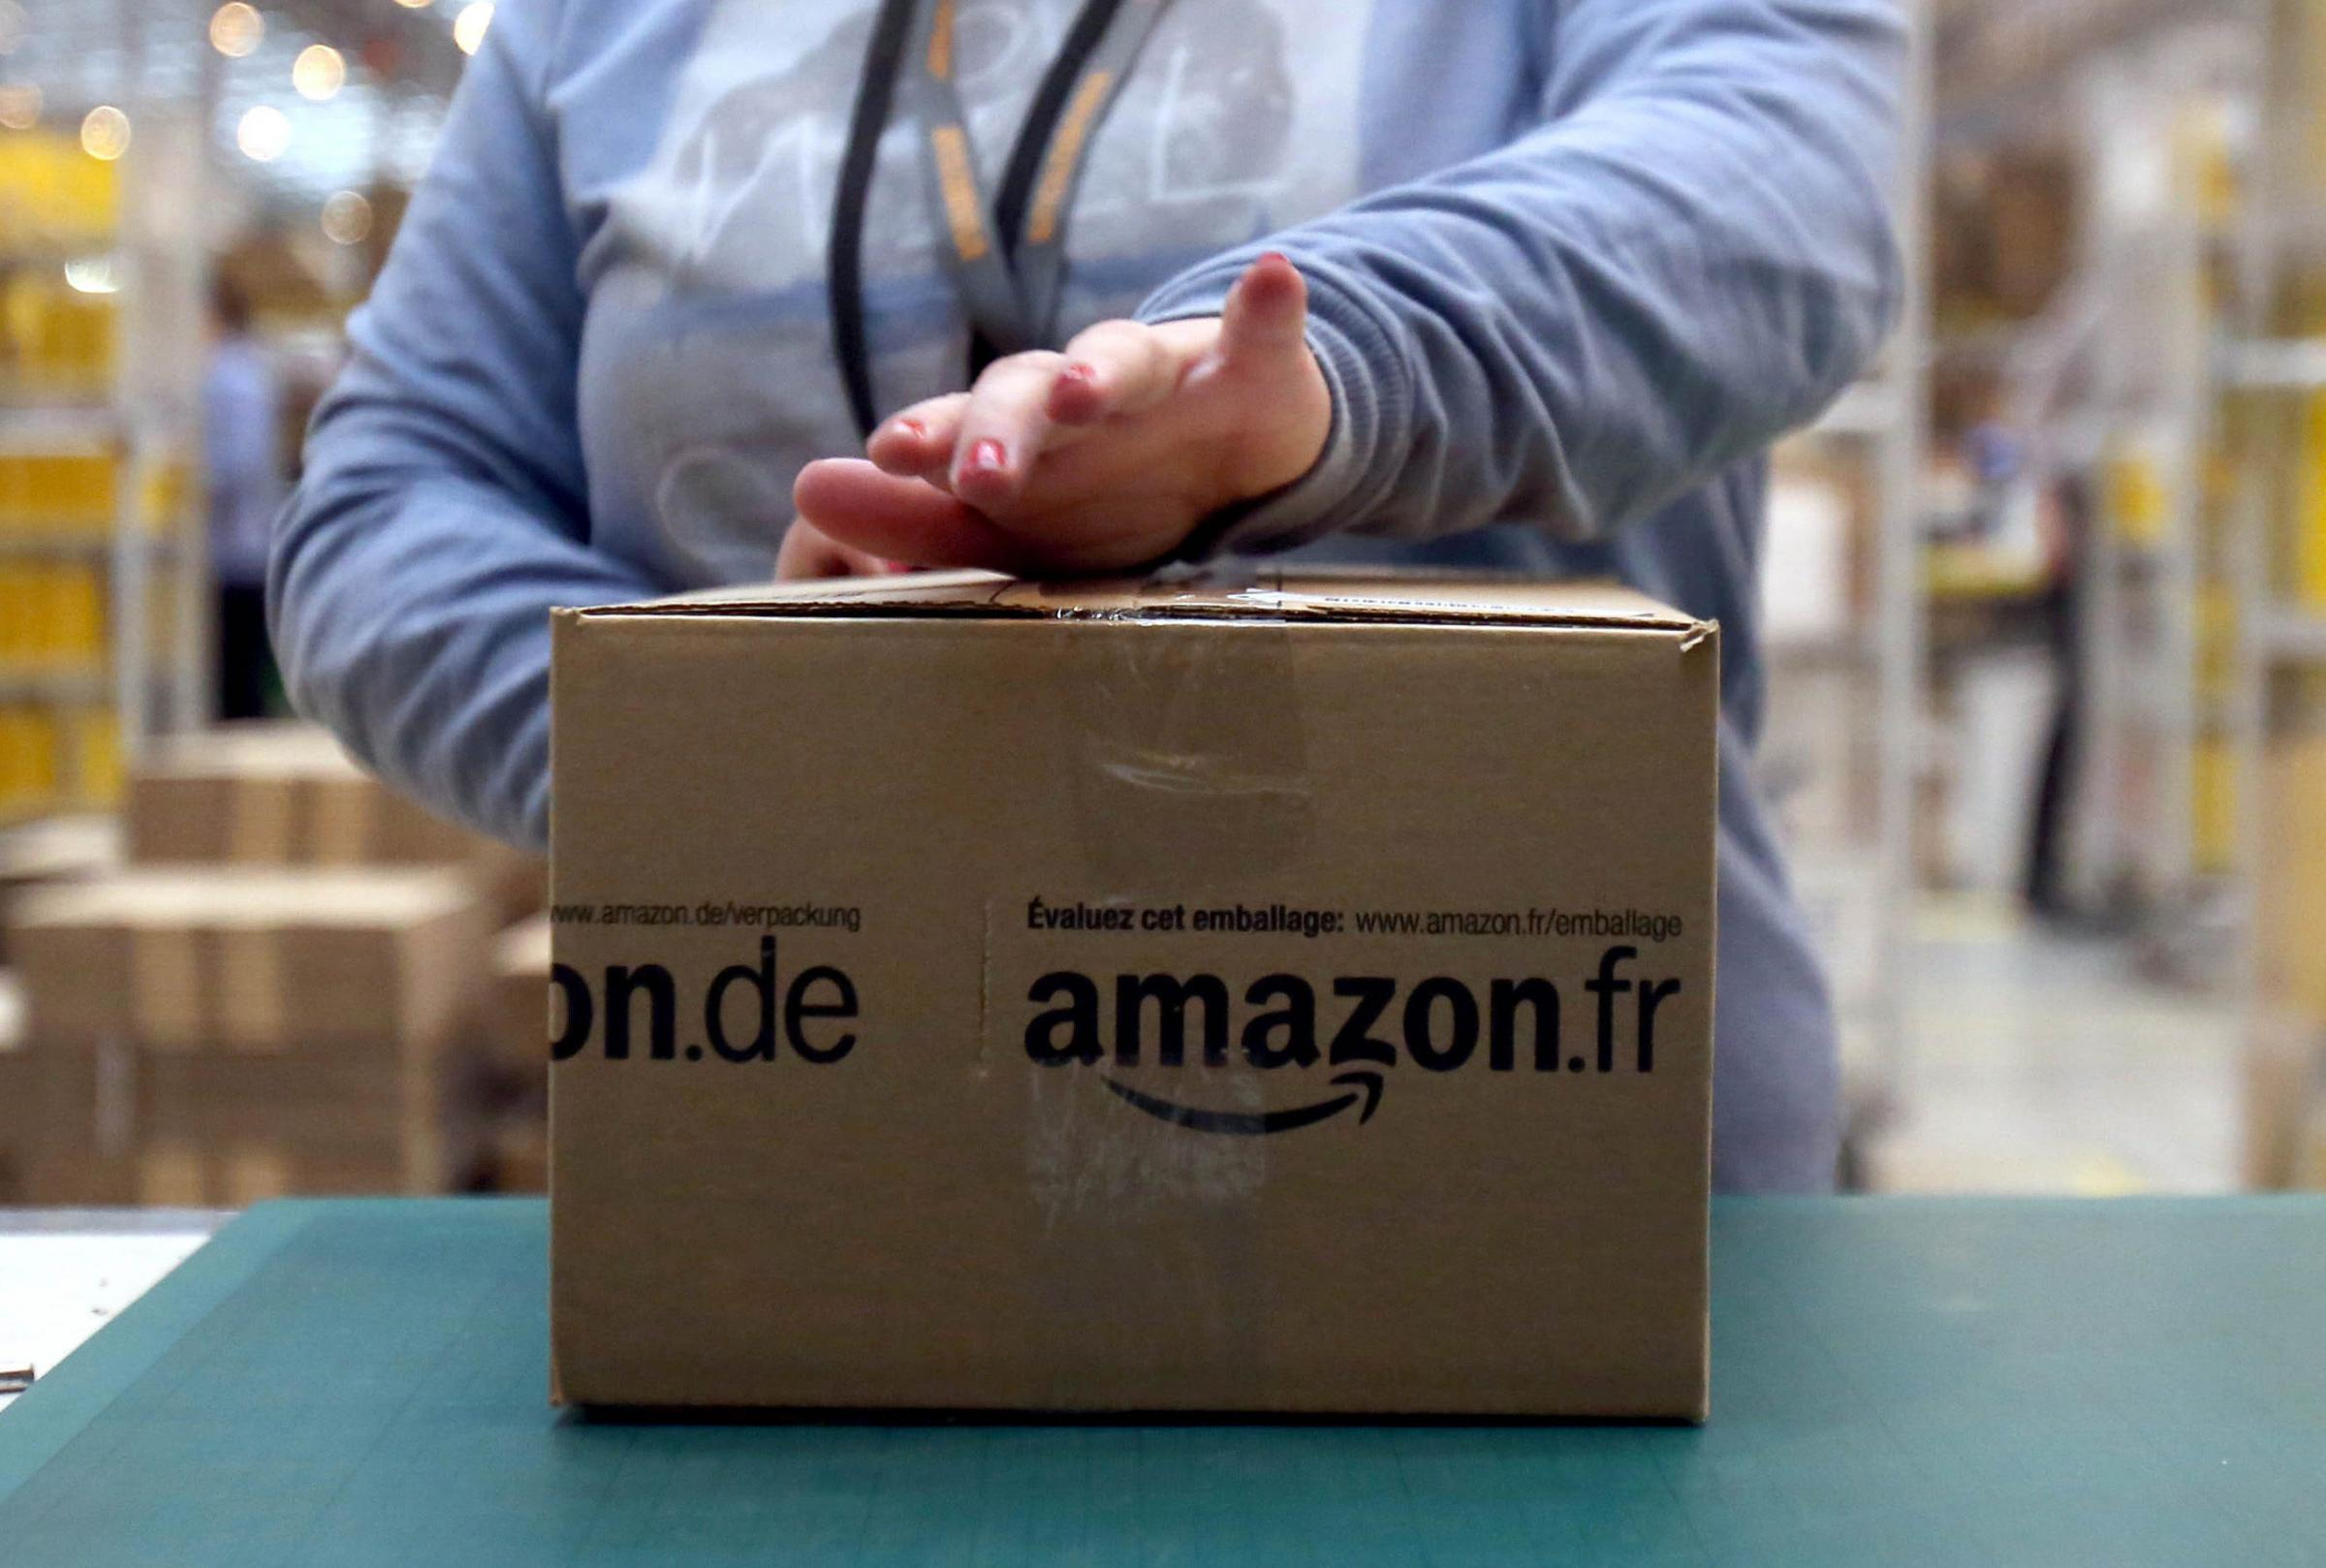 Amazon to create 1,000 Christmas jobs at Gourock centre